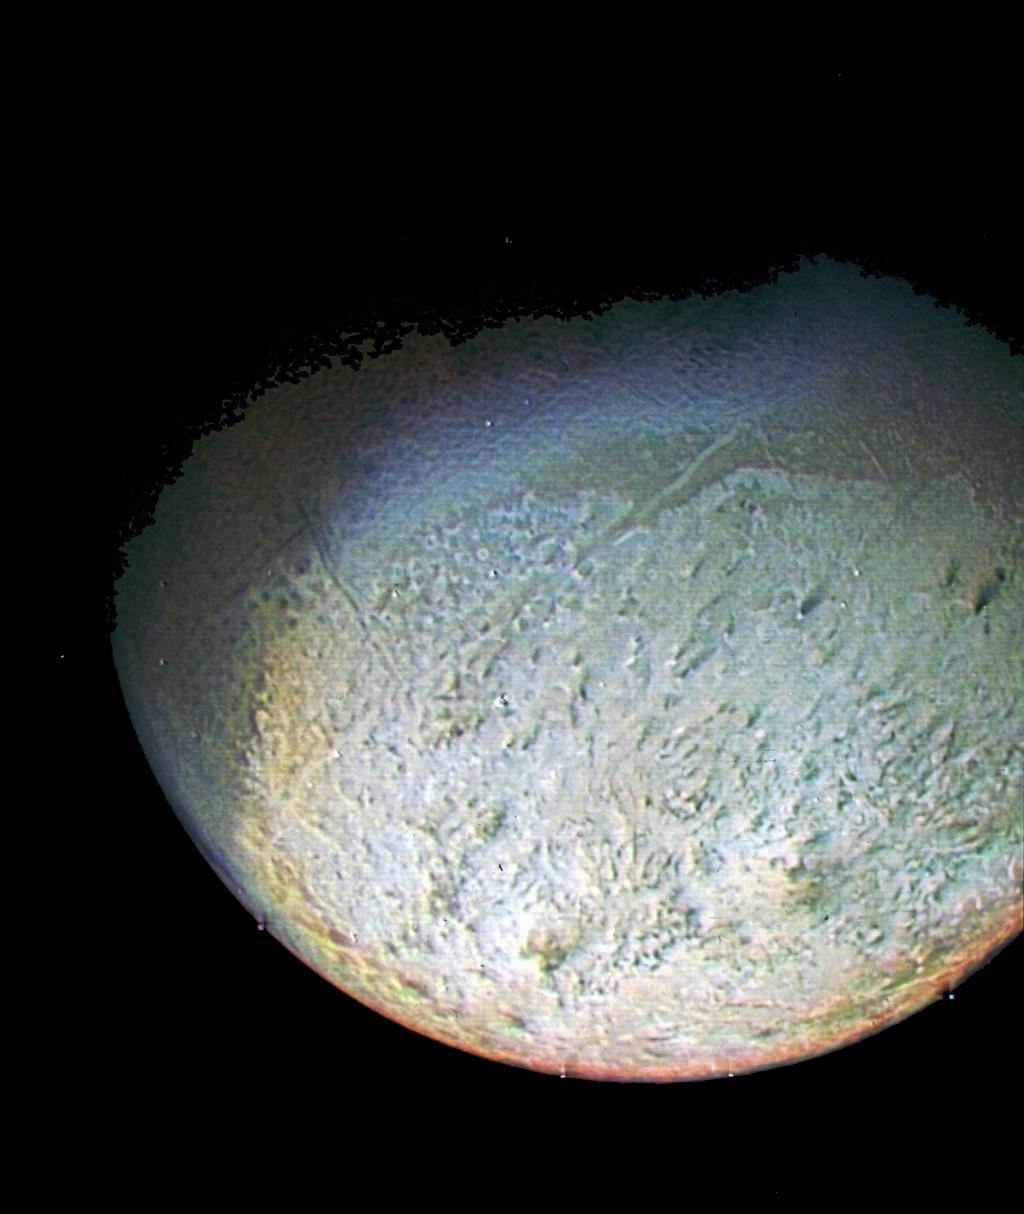 This color photo of Neptune's large satellite Triton was obtained on Aug. 24 1989. In reality, there is no part of Triton that would appear blue to the eye. The bright southern hemisphere of Triton, which fills most of this frame, is generally pink.